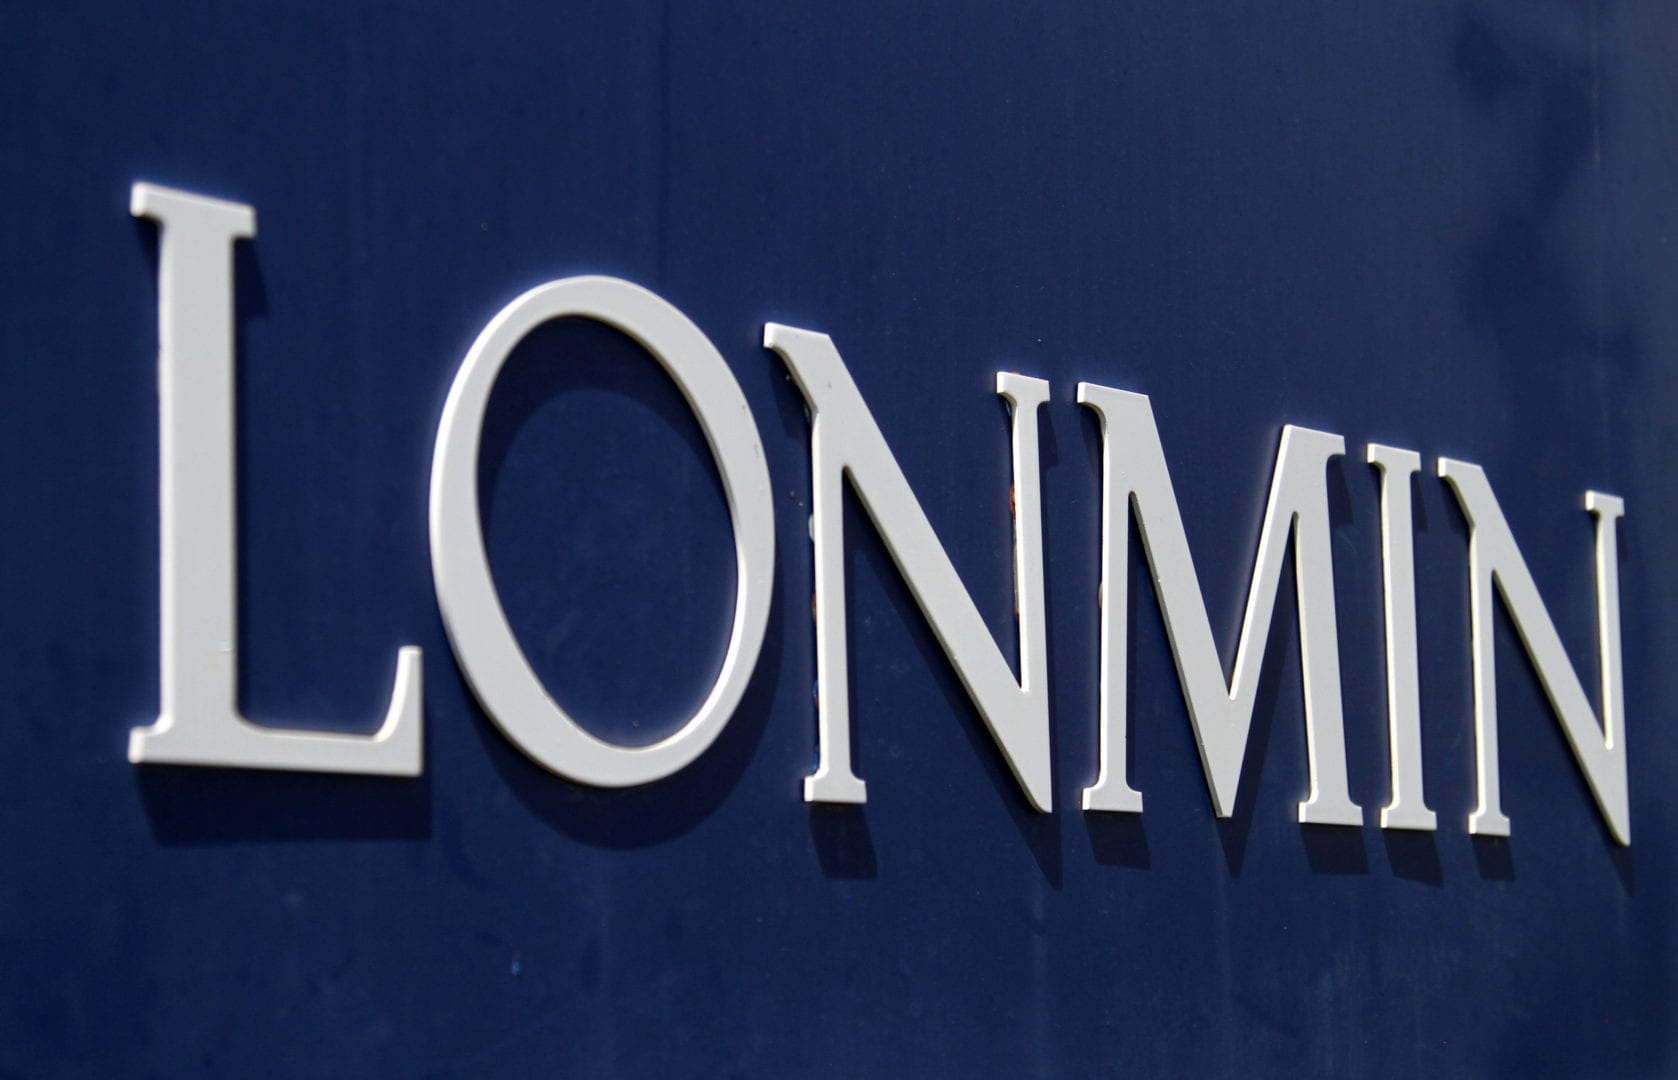 Lonmin signs 3 year wage agreement with AMCU